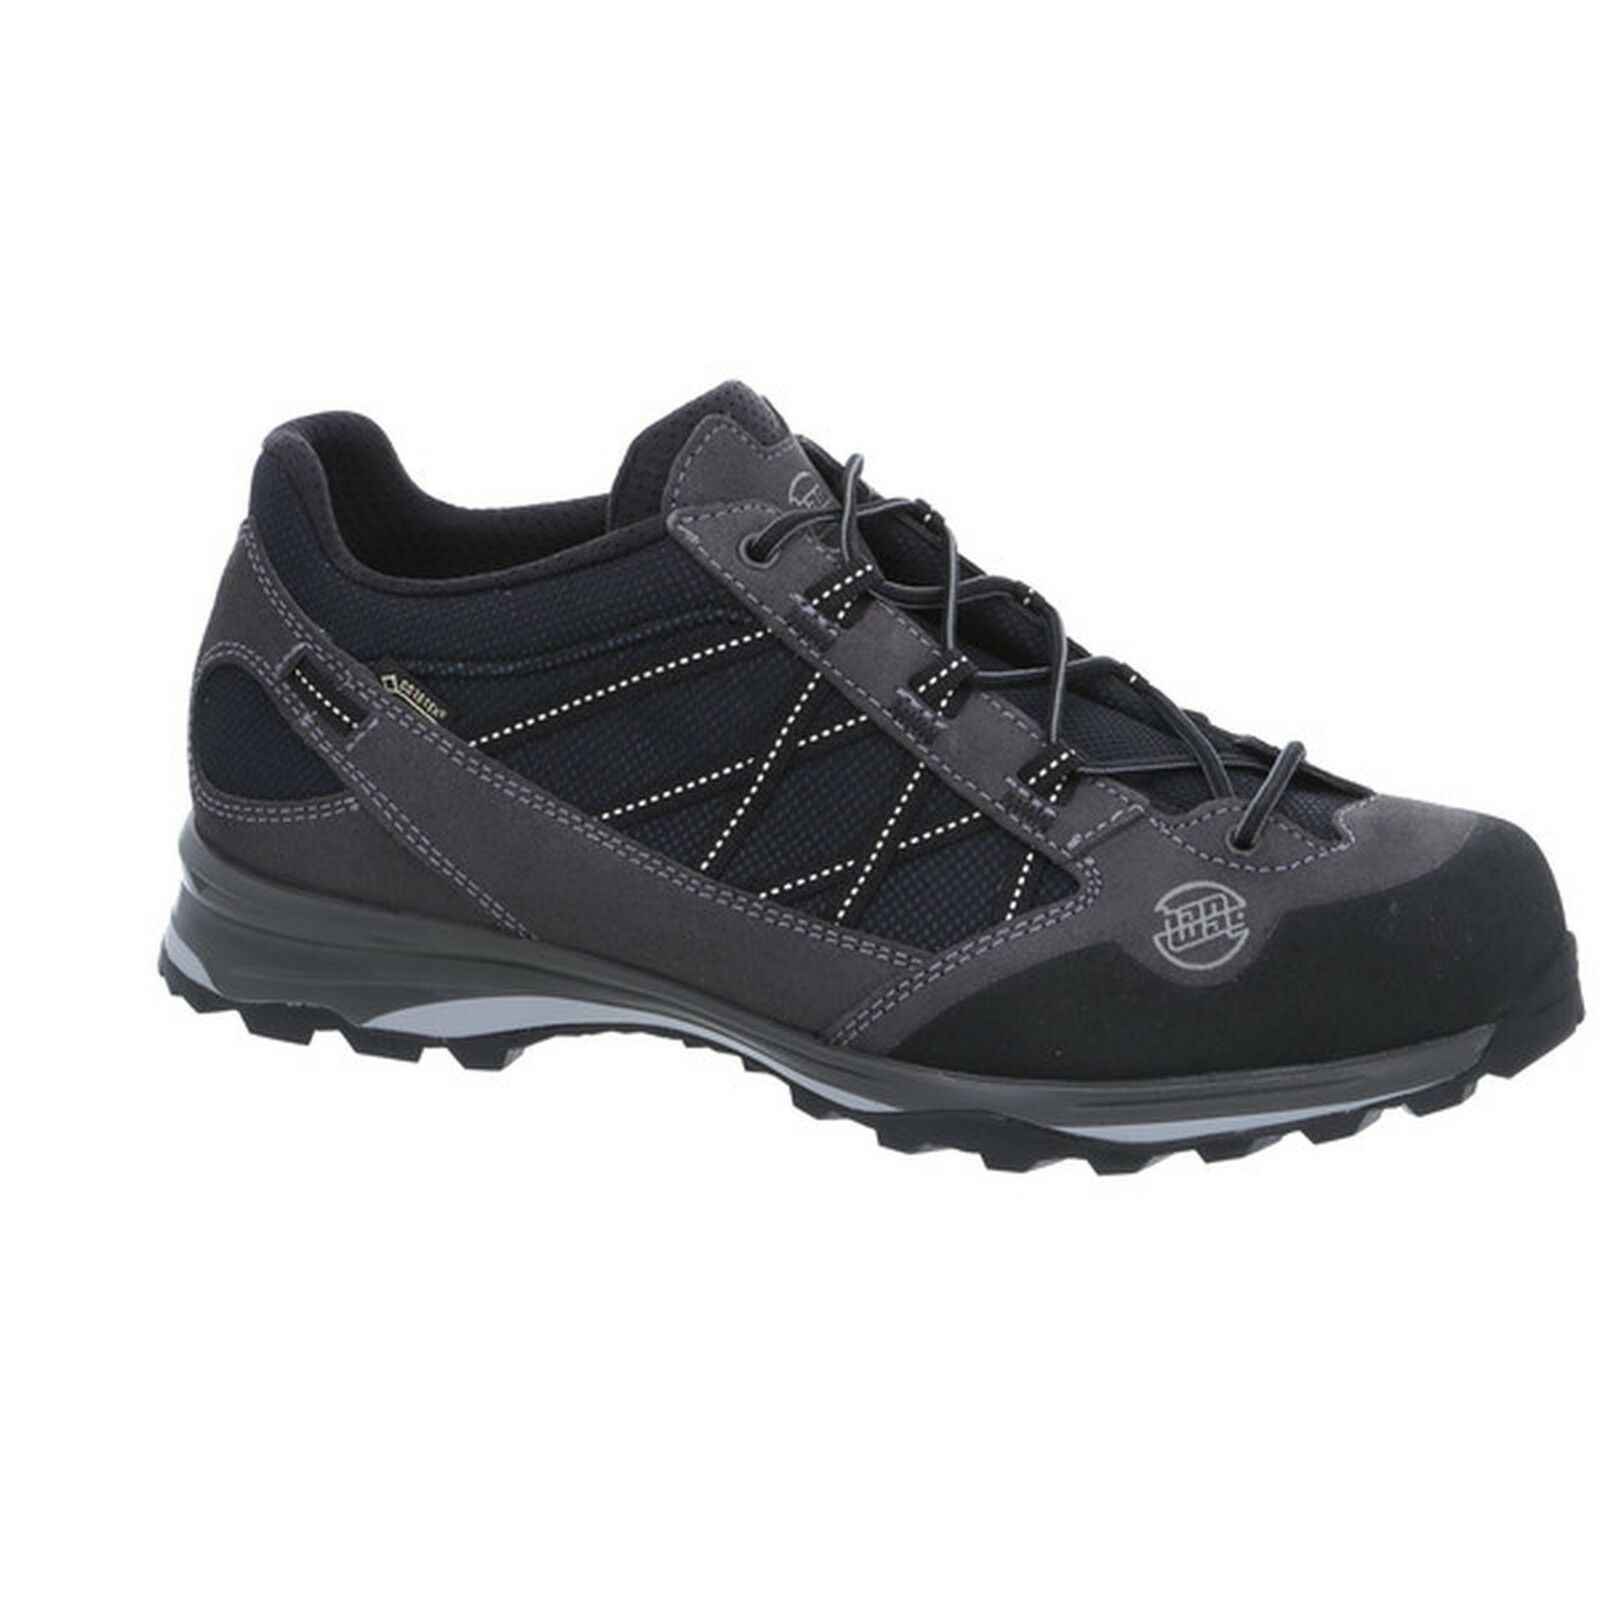 Hanwag Mountain shoes Belorado II Low GTX Size 8 - 42 Asphalt